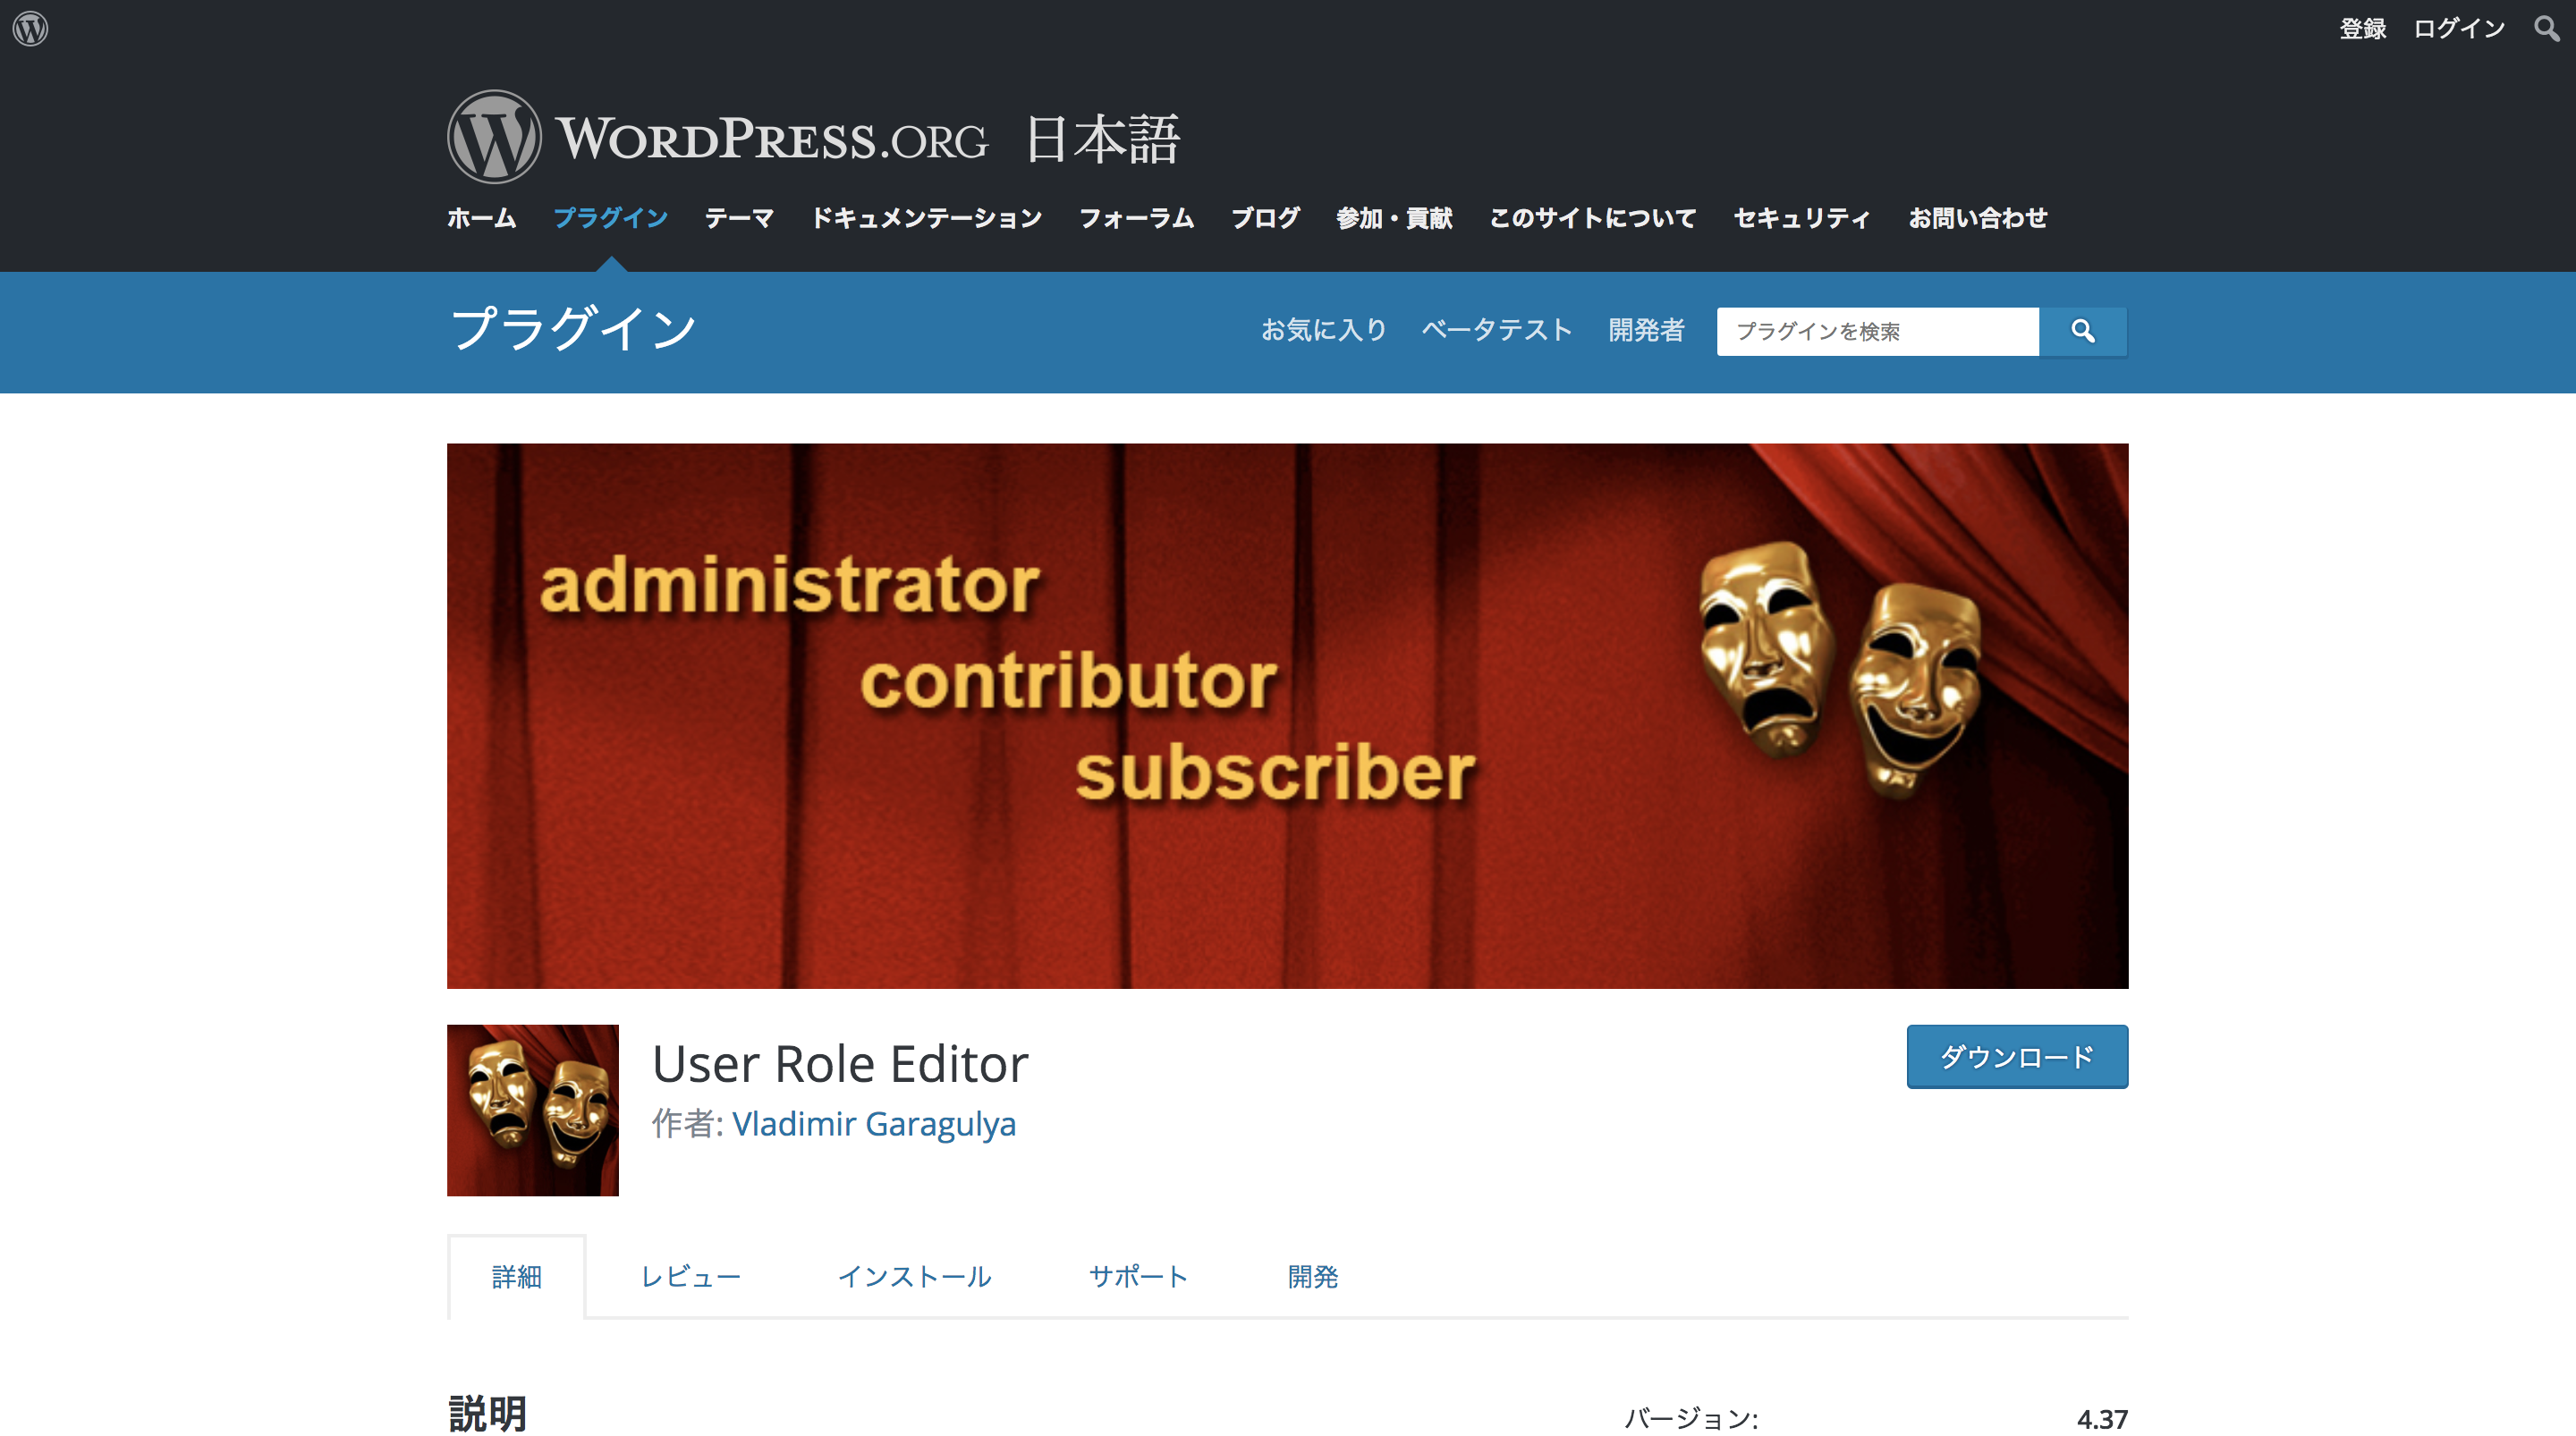 User Role Editor